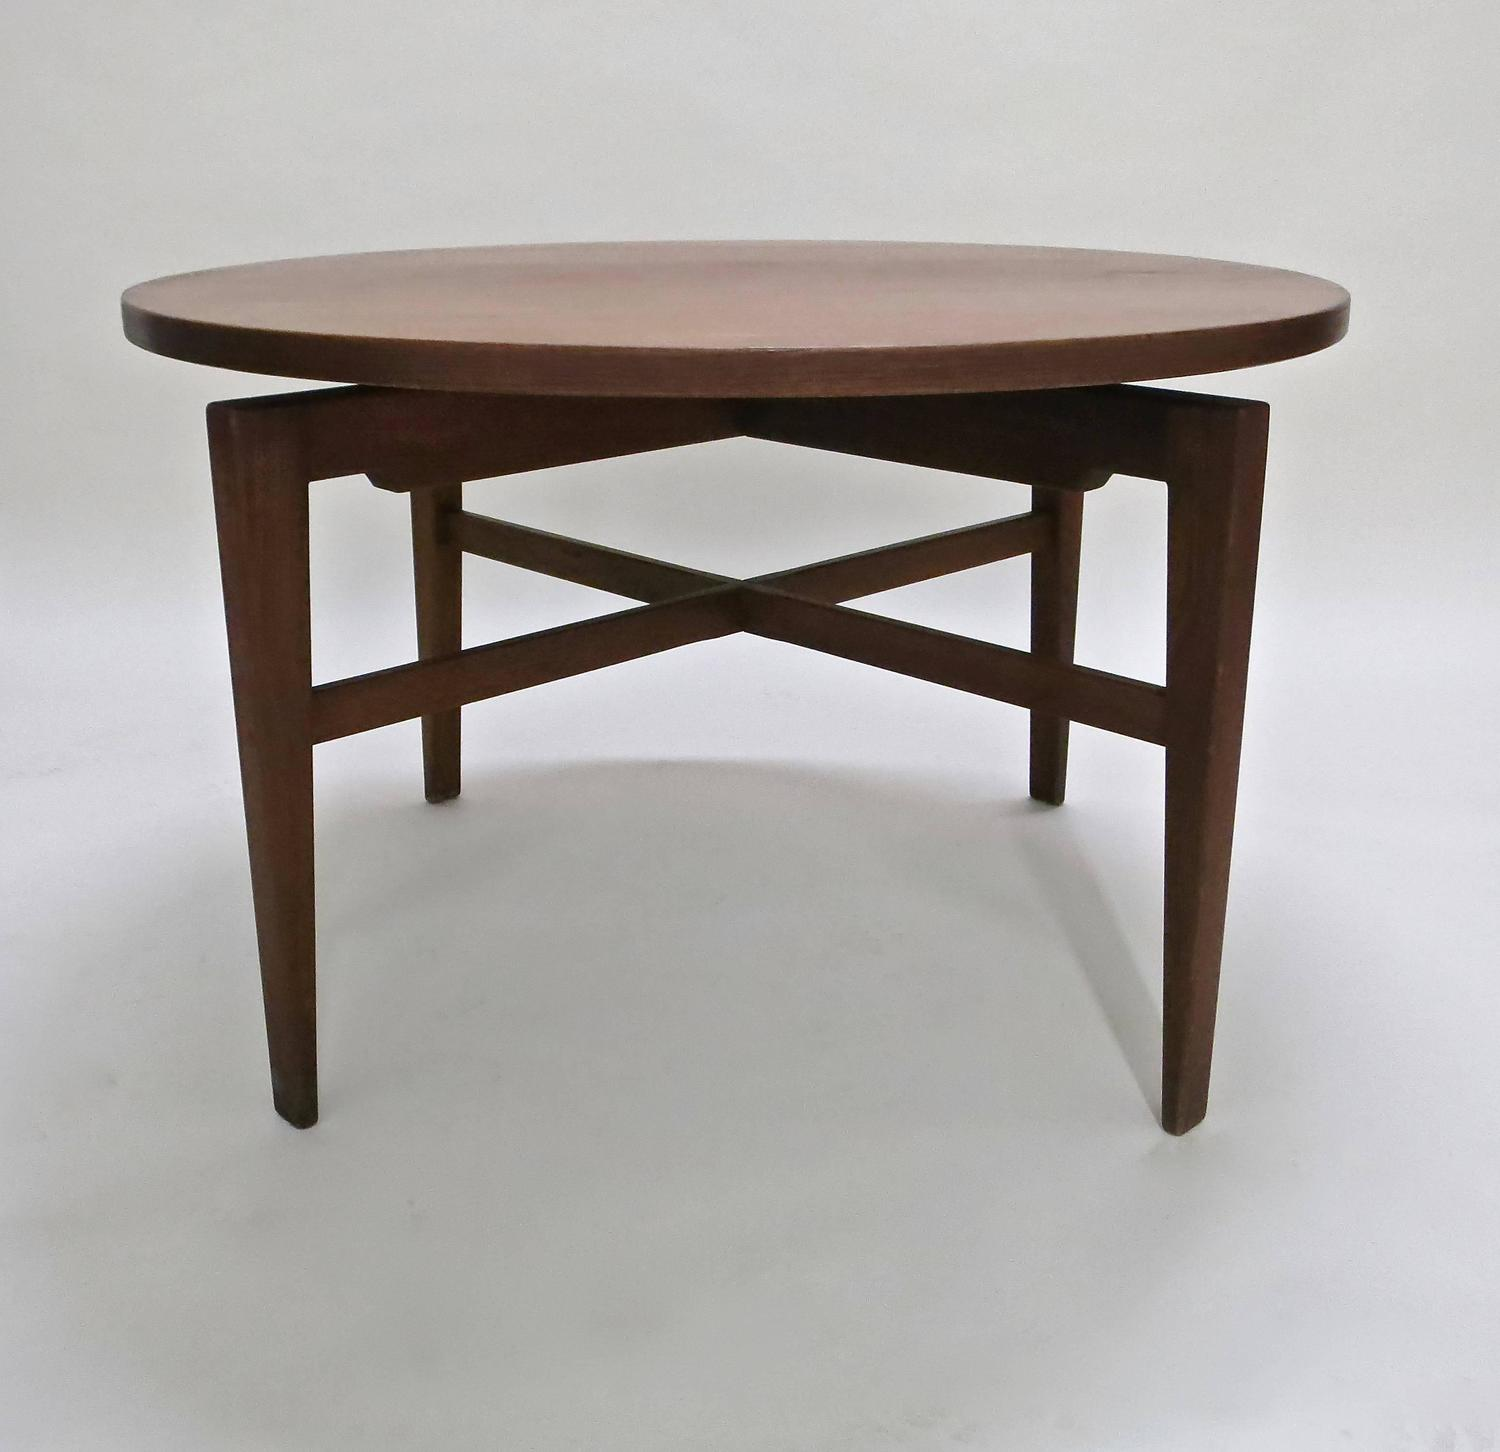 Rotating table by jens risom circa 1950 original for Dining room tables made in usa